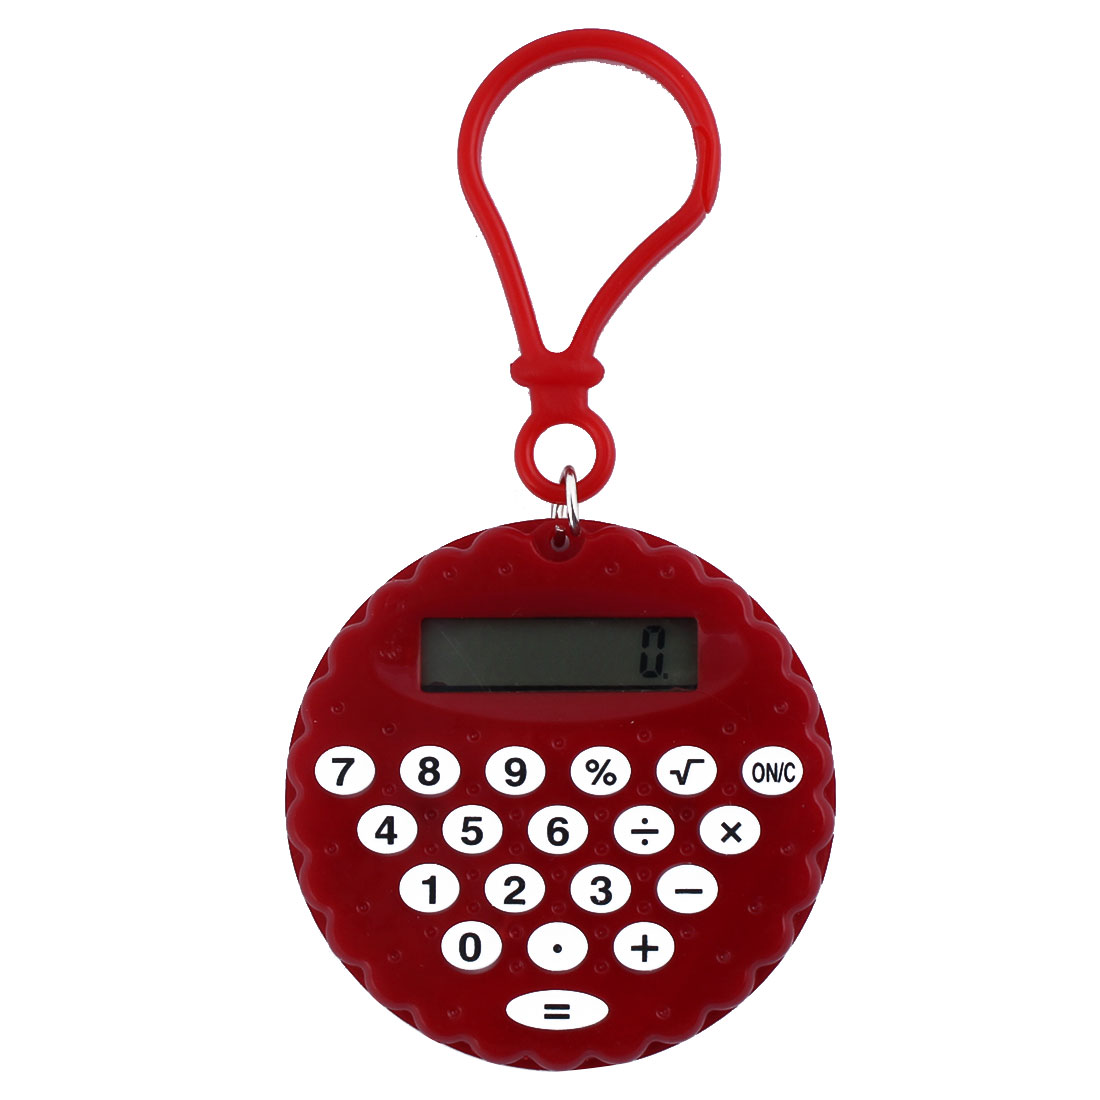 Plastic Biscuit Shape Portable LCD Display 8 Digits Calculator Key Chain Red